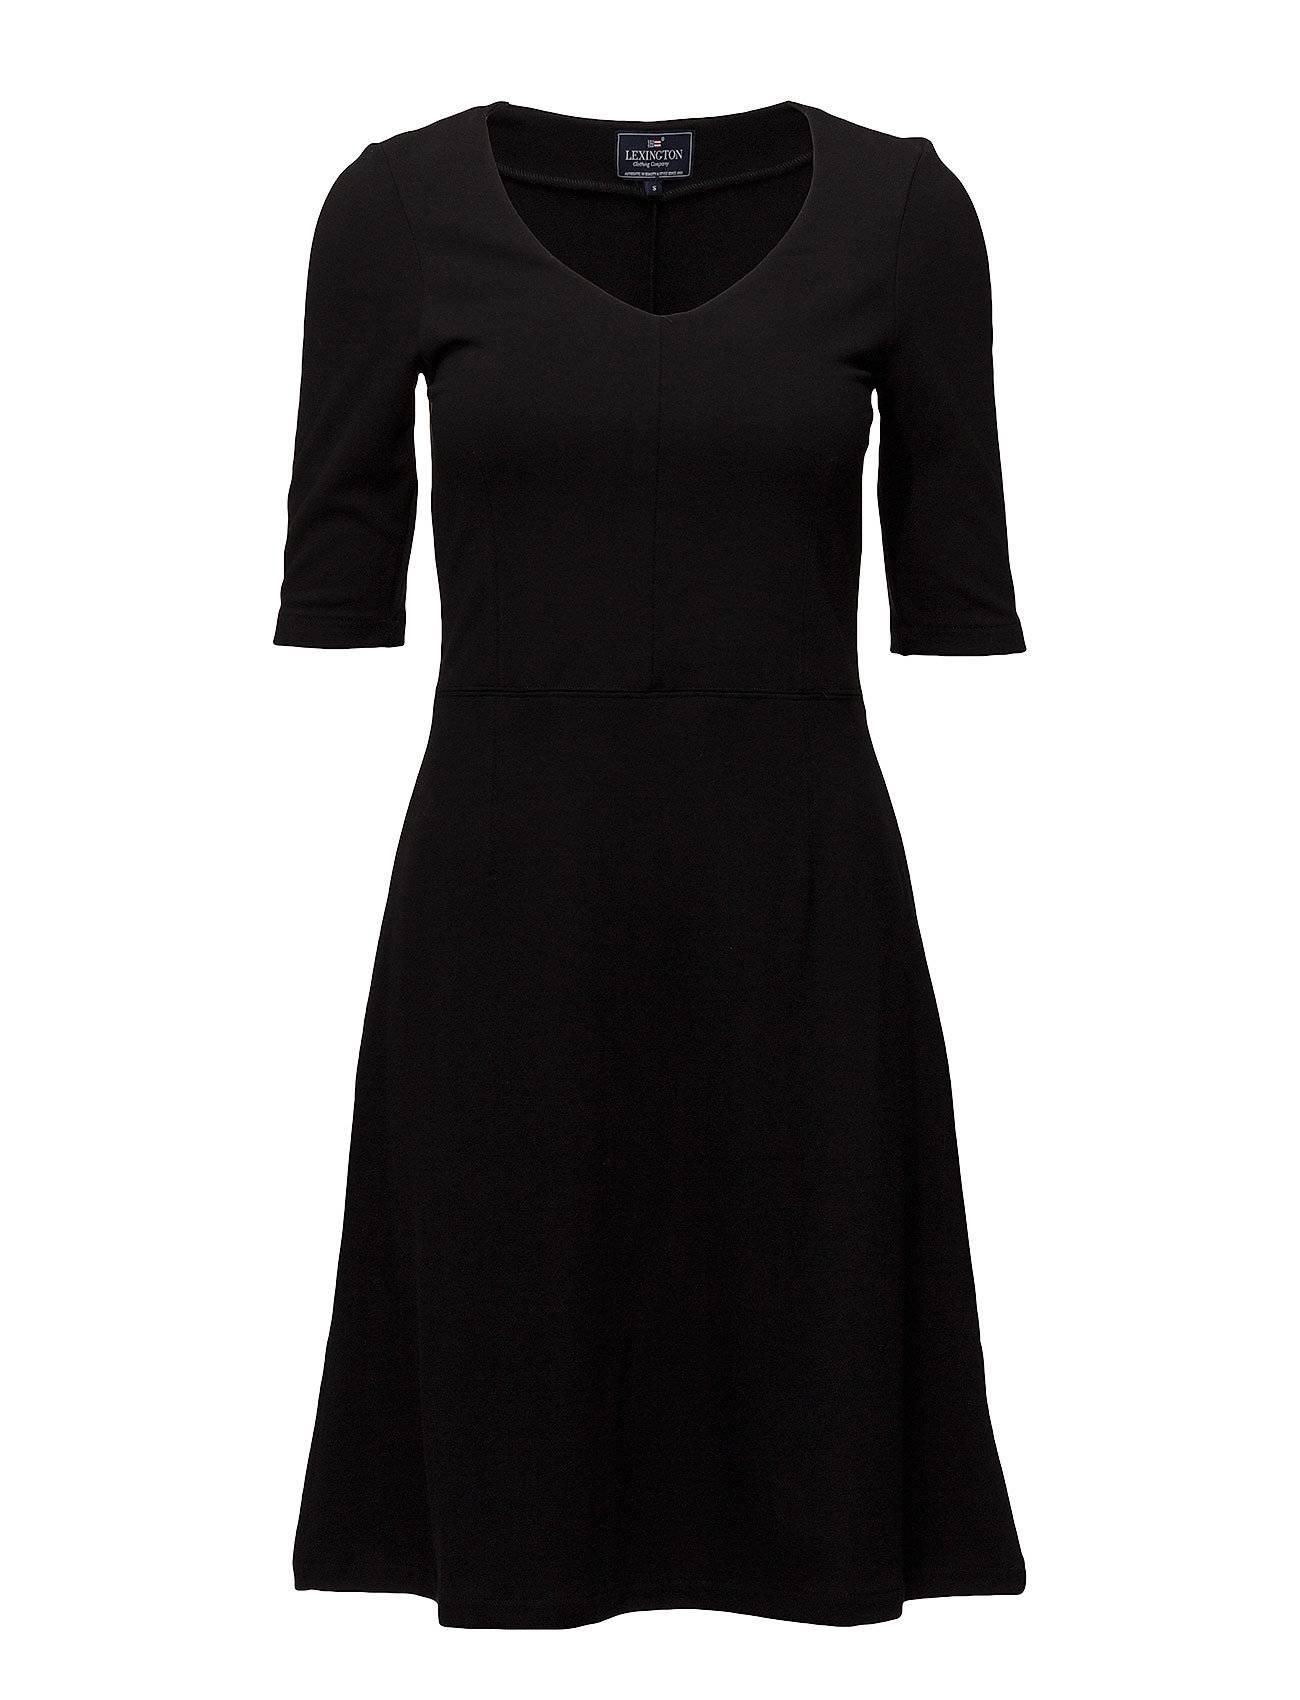 Lexington Clothing Scarlett Jersey Dress